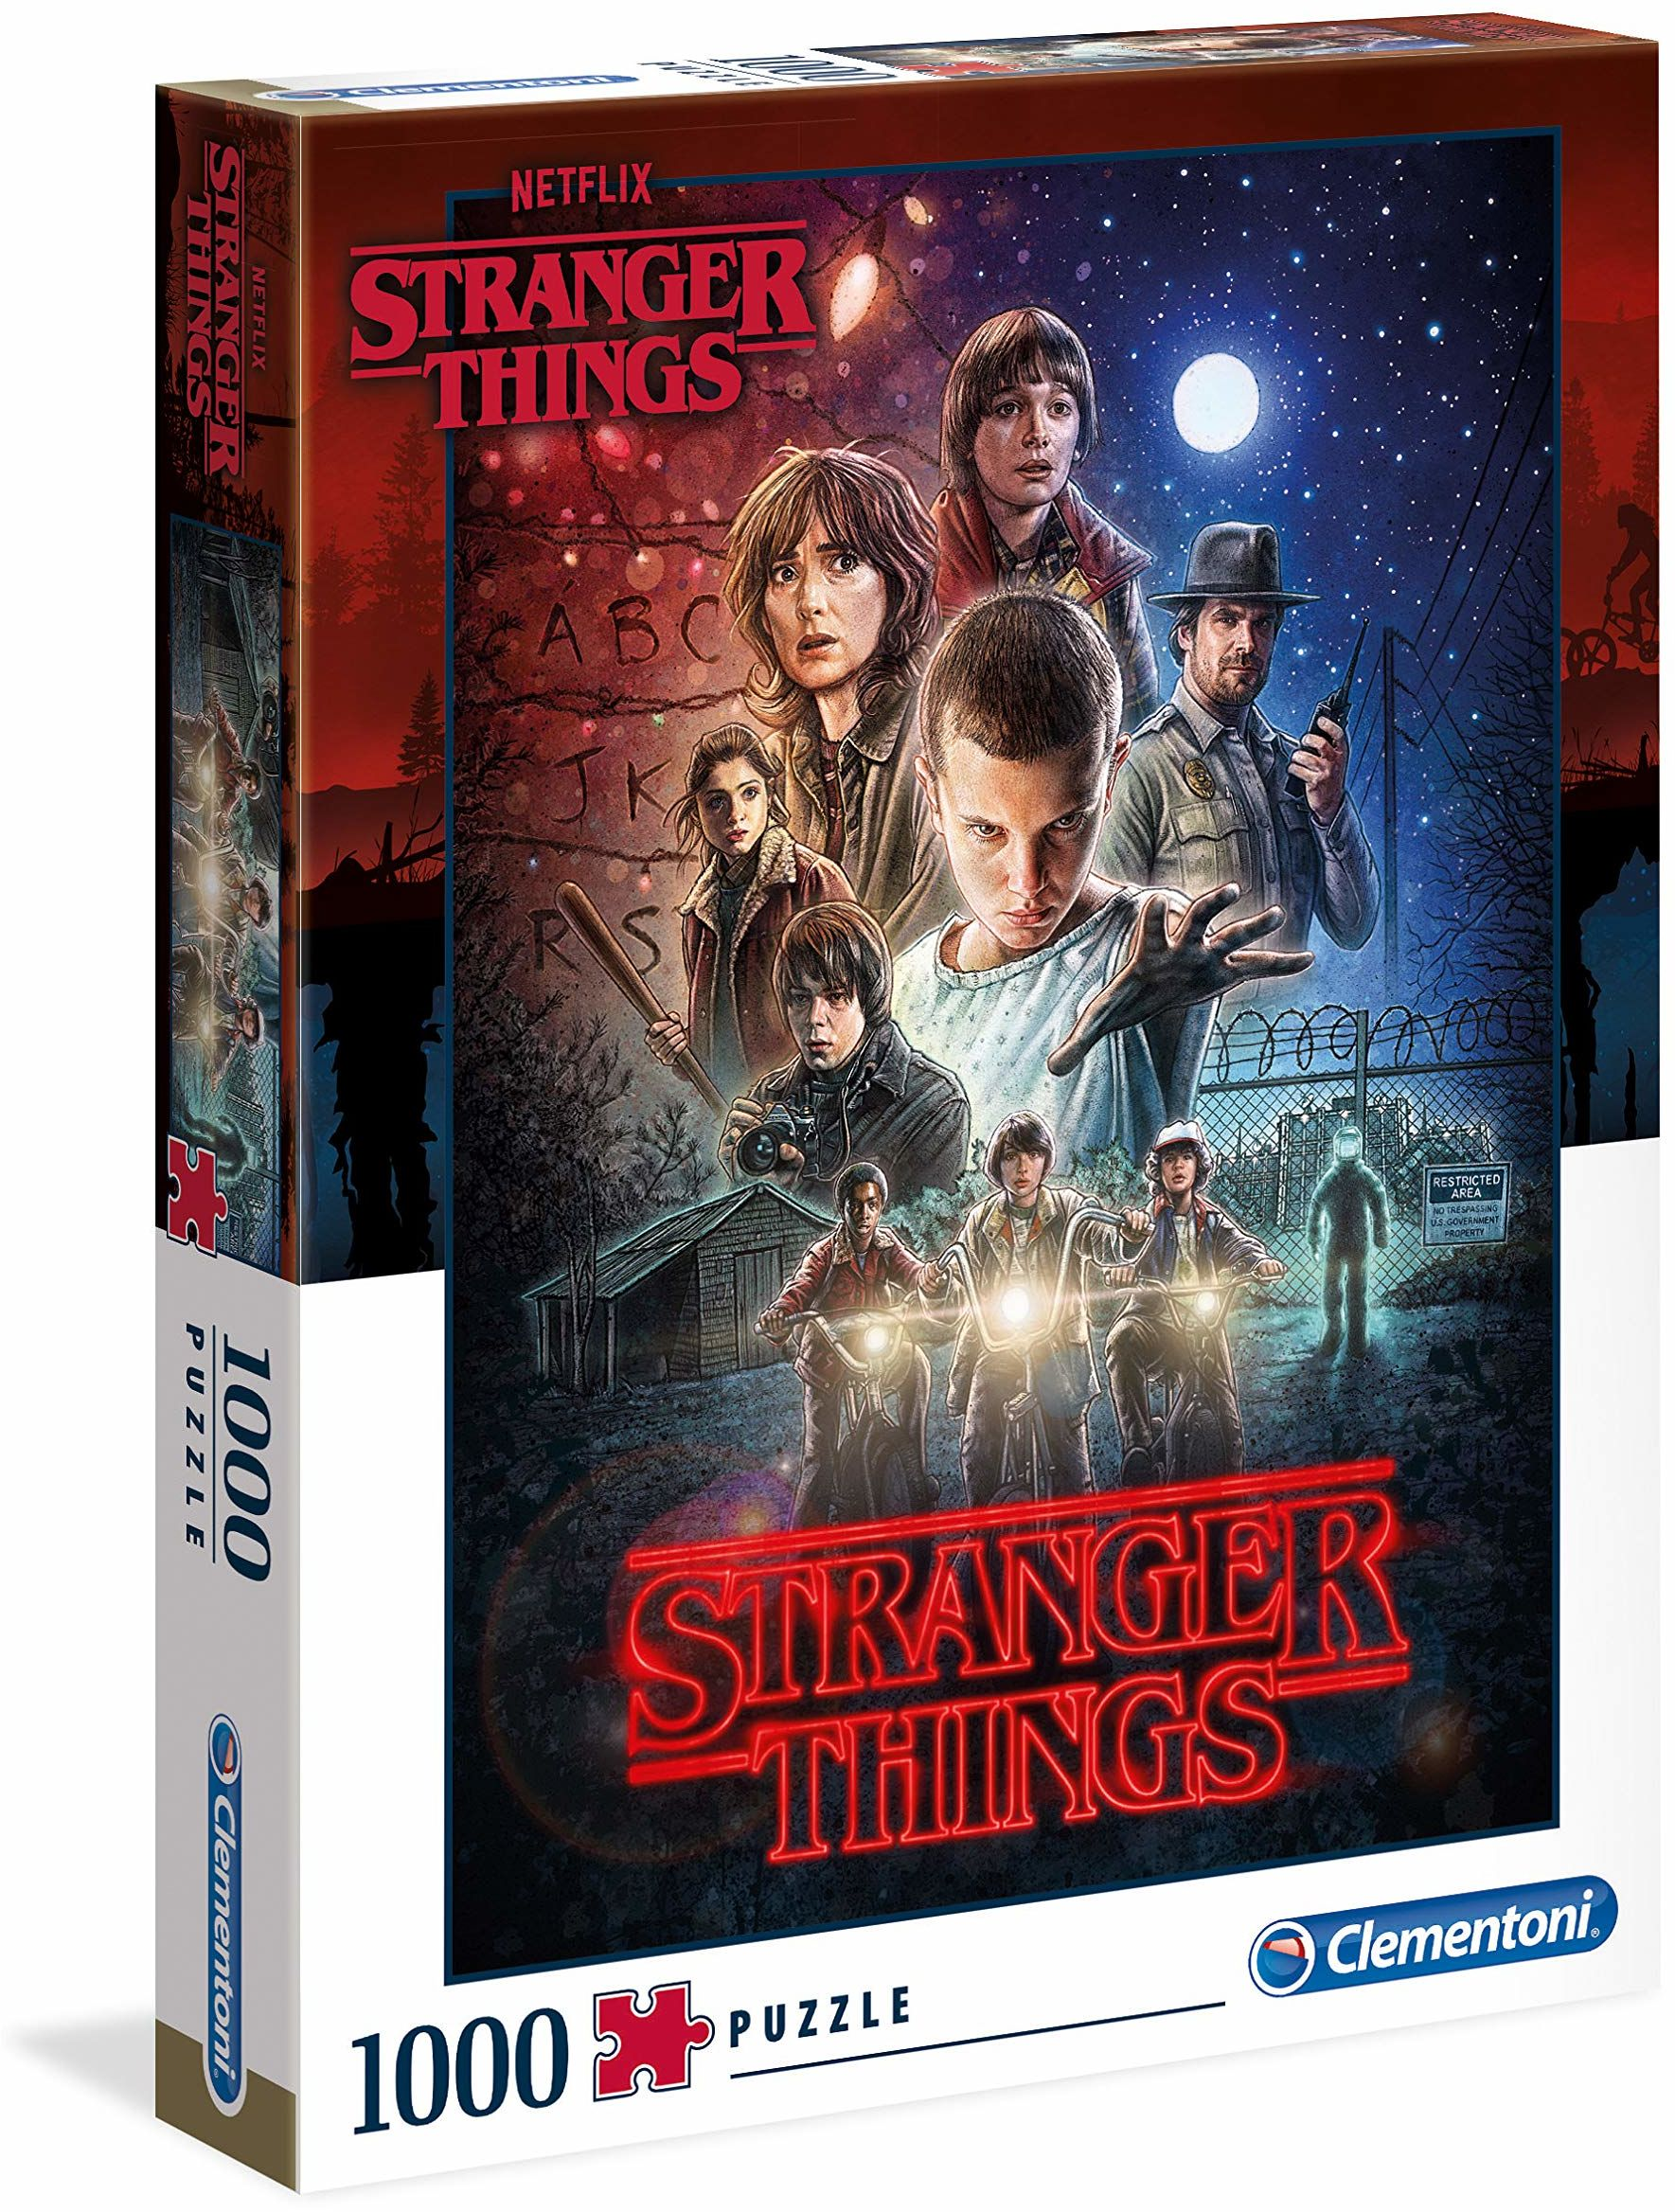 Clementoni 39542 Stranger Things Things-1000 szt. Puzzle 1